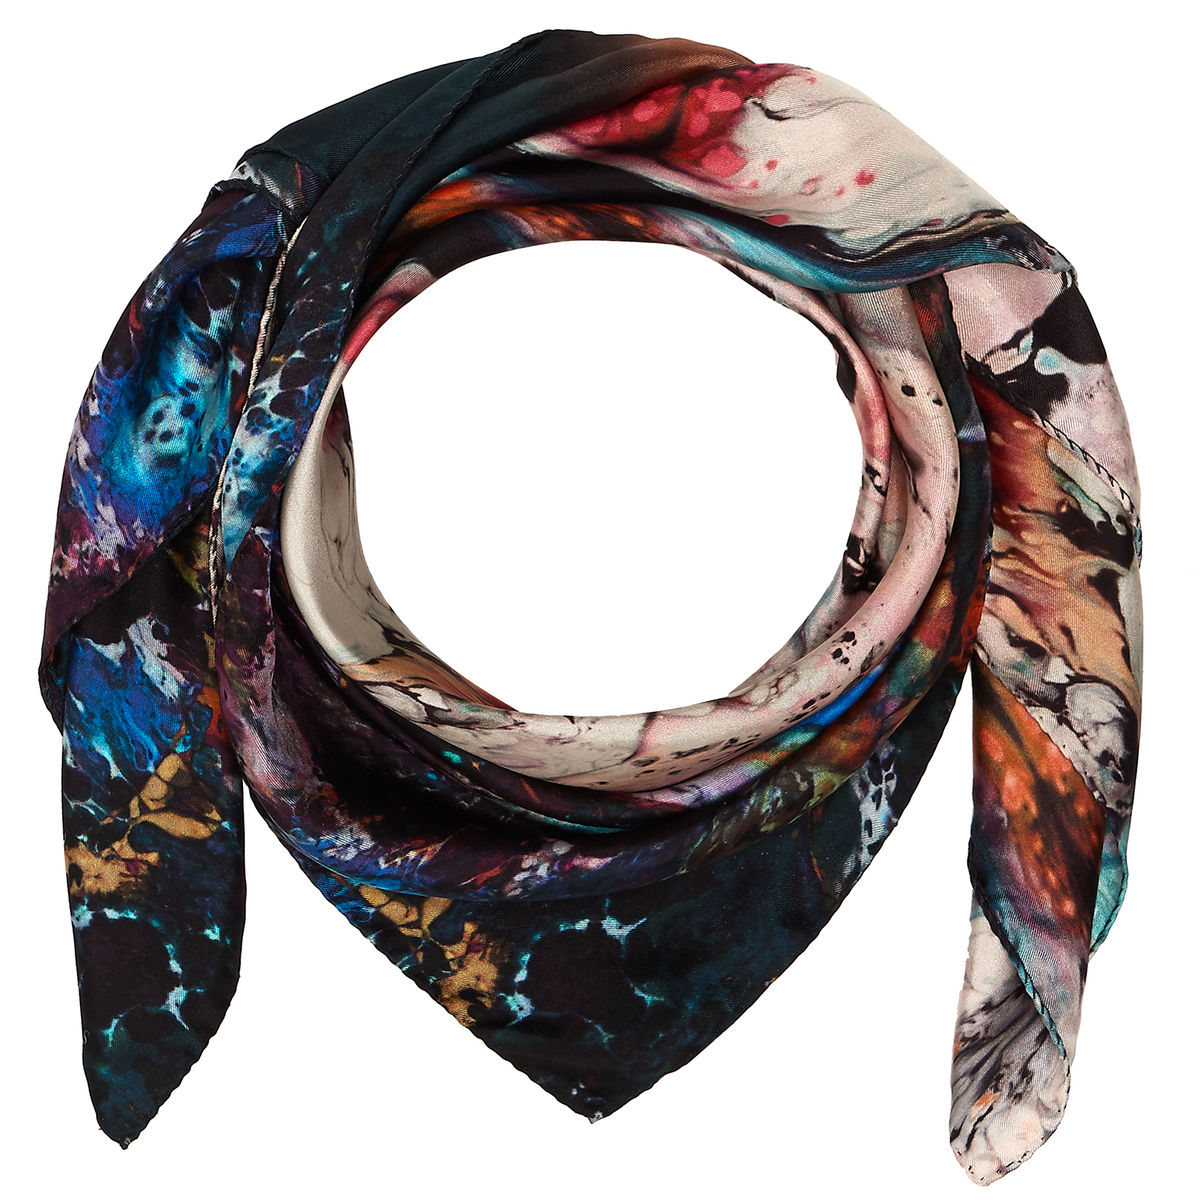 ORBIT MEDIUM SQUARE SCARF - product images  of